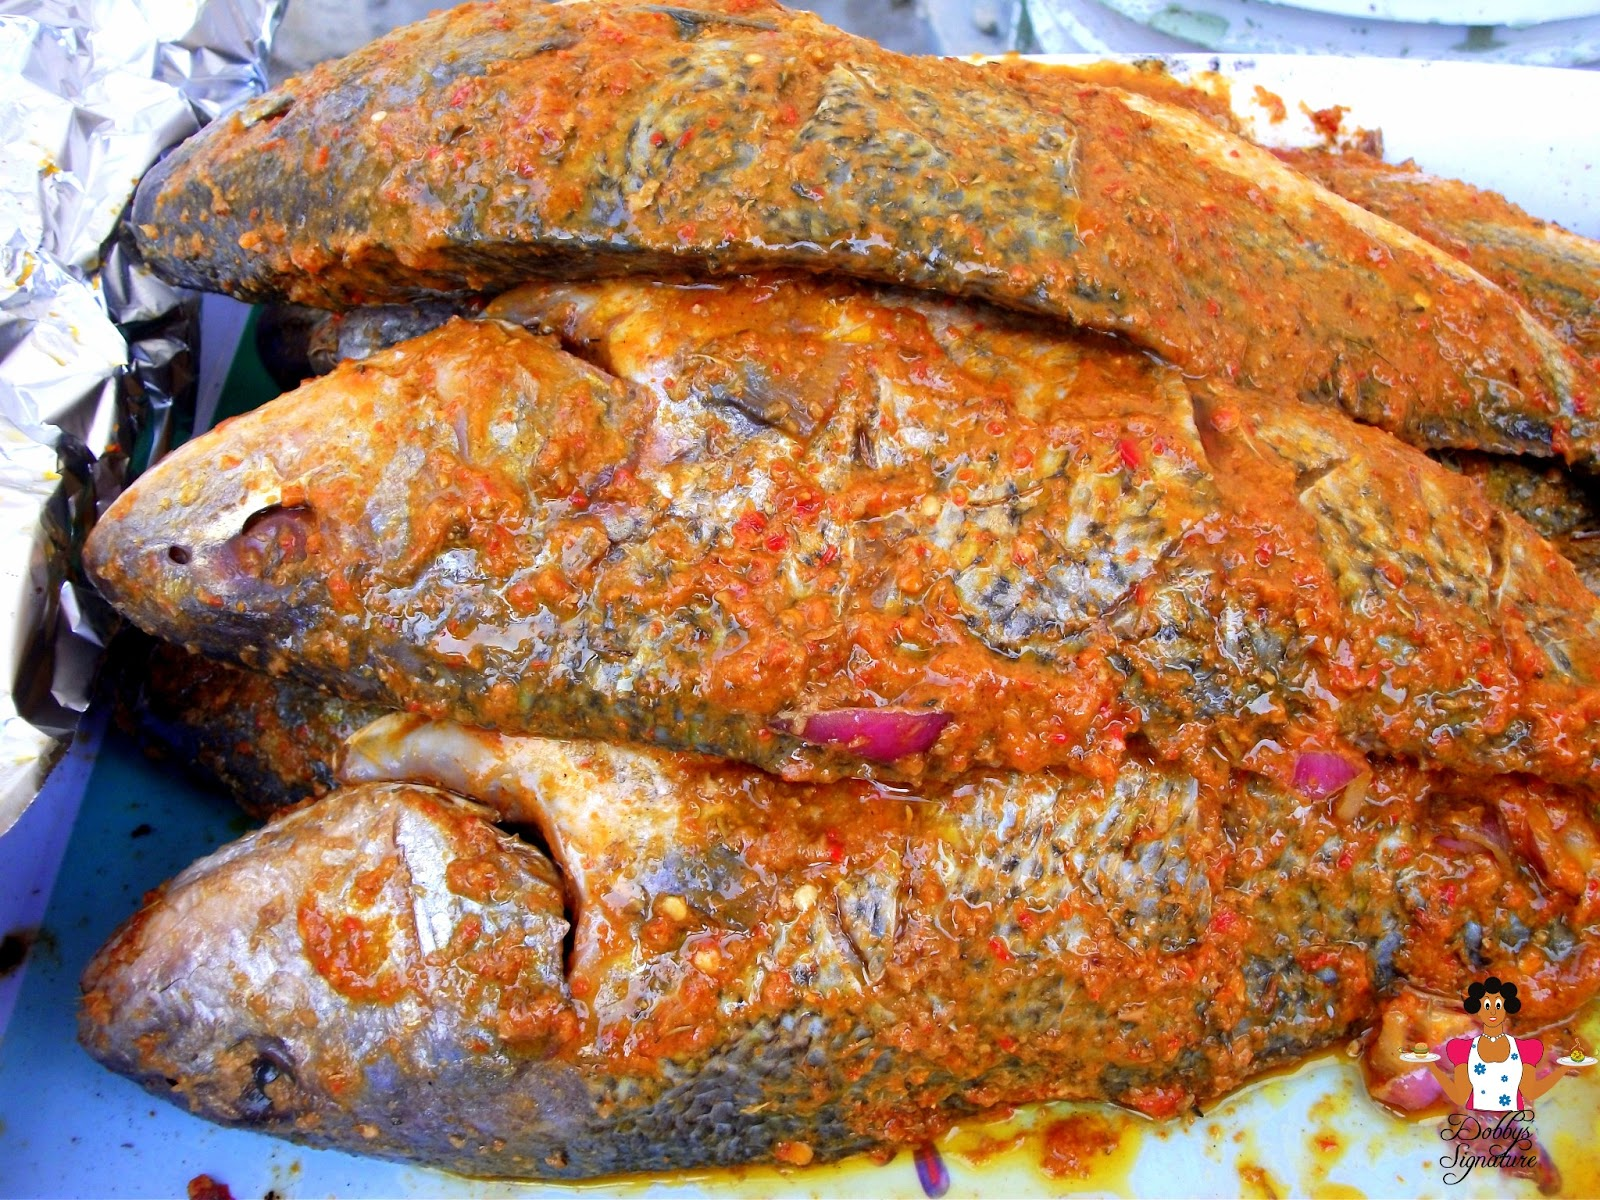 Dobbys signature nigerian food blog i nigerian food for The fish grill